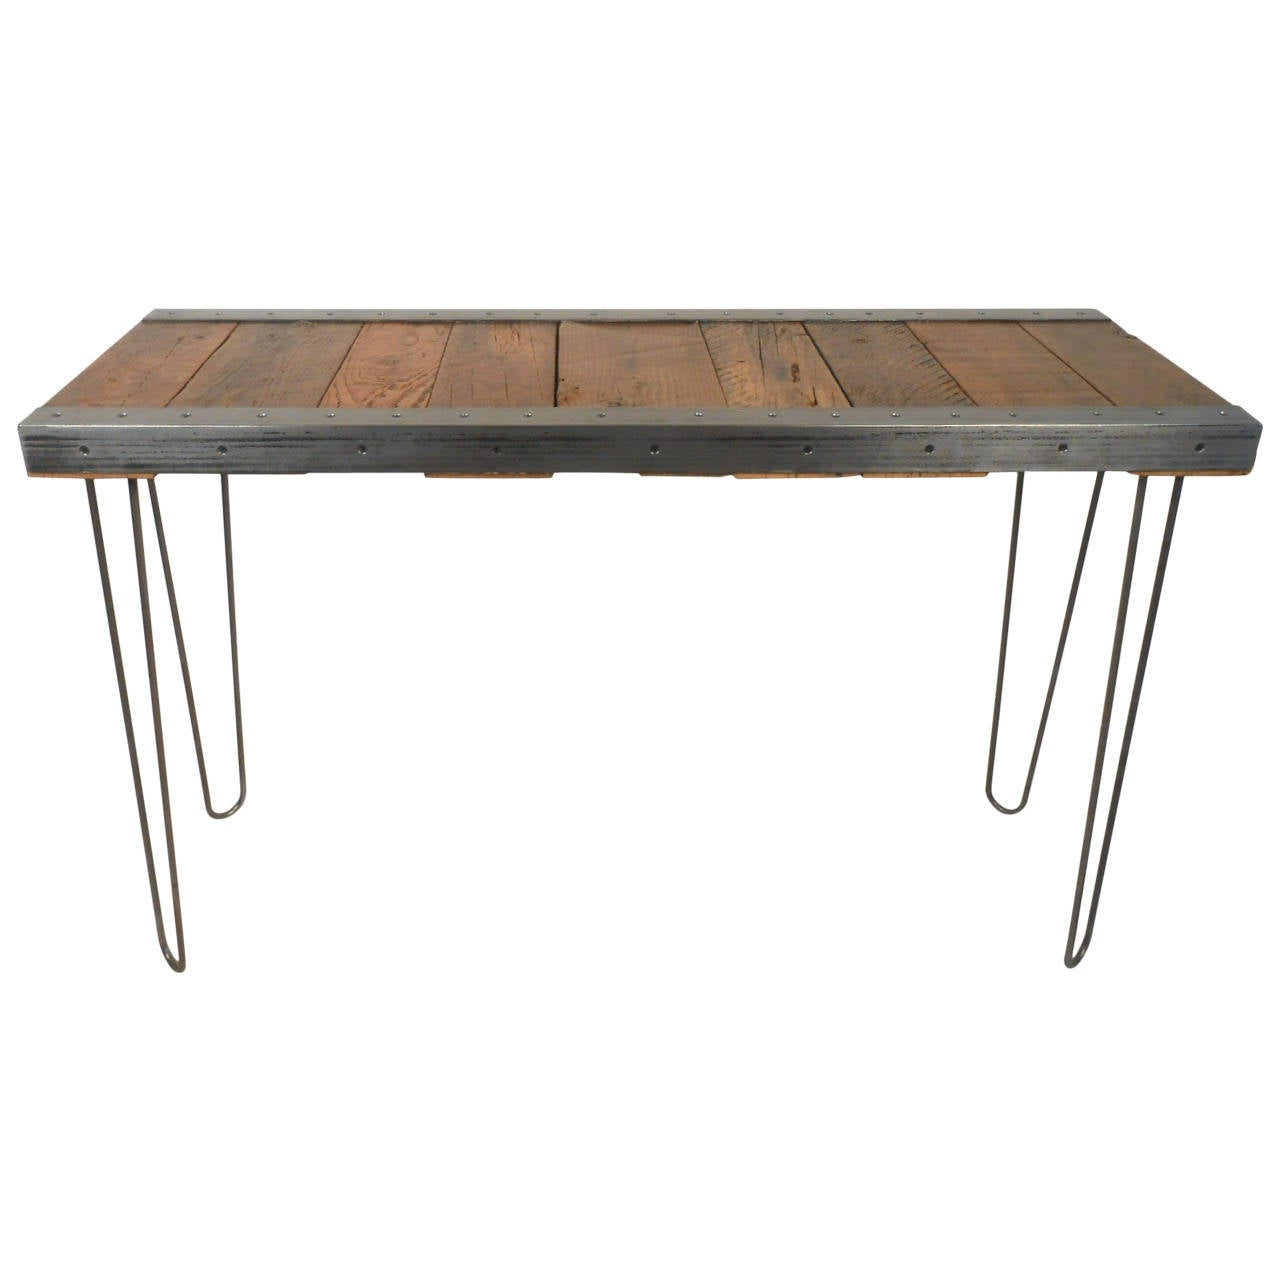 Industrial Modern Console Table with Hairpin Legs For Sale at 1stdibs